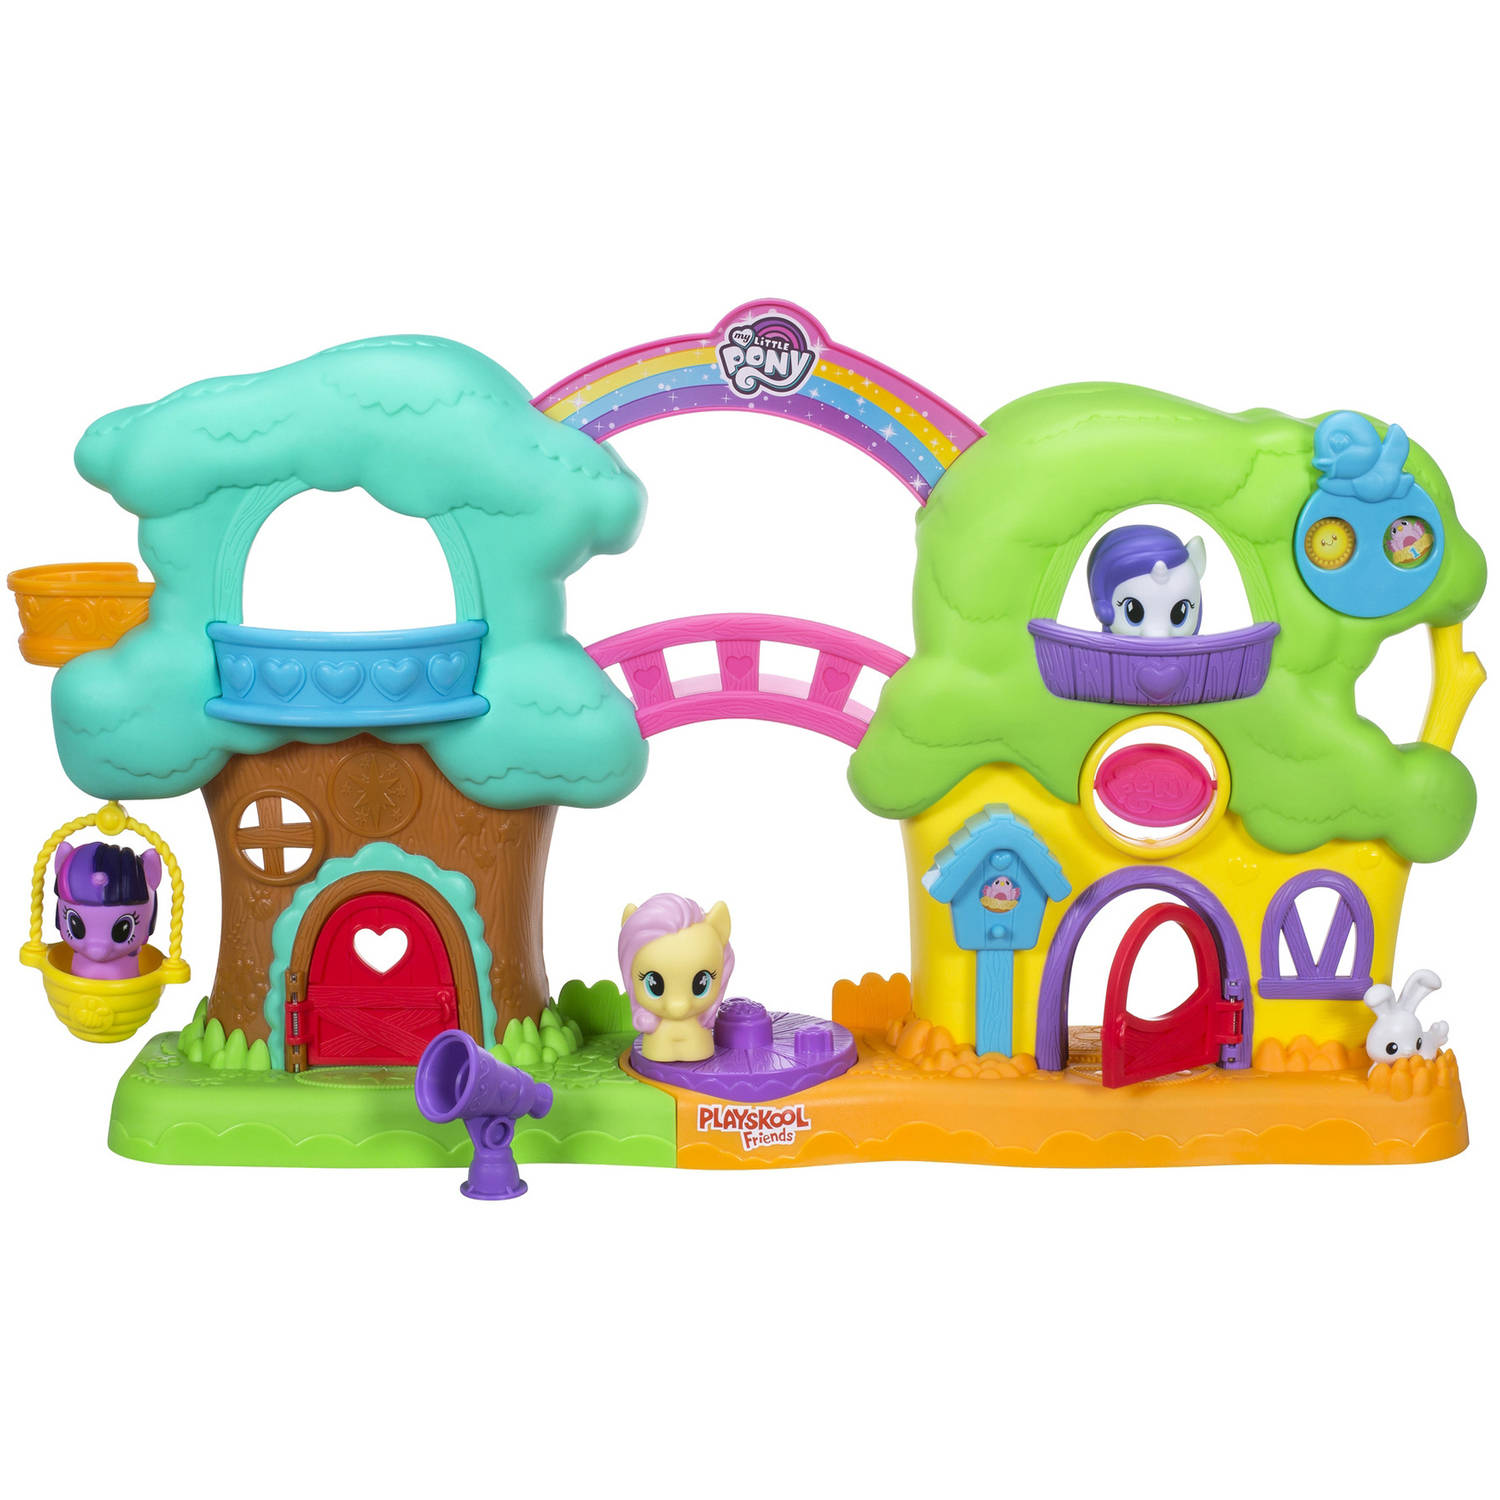 Playskool Friends My Little Pony Spin 'n Sounds Treehouse Cottage by Hasbro